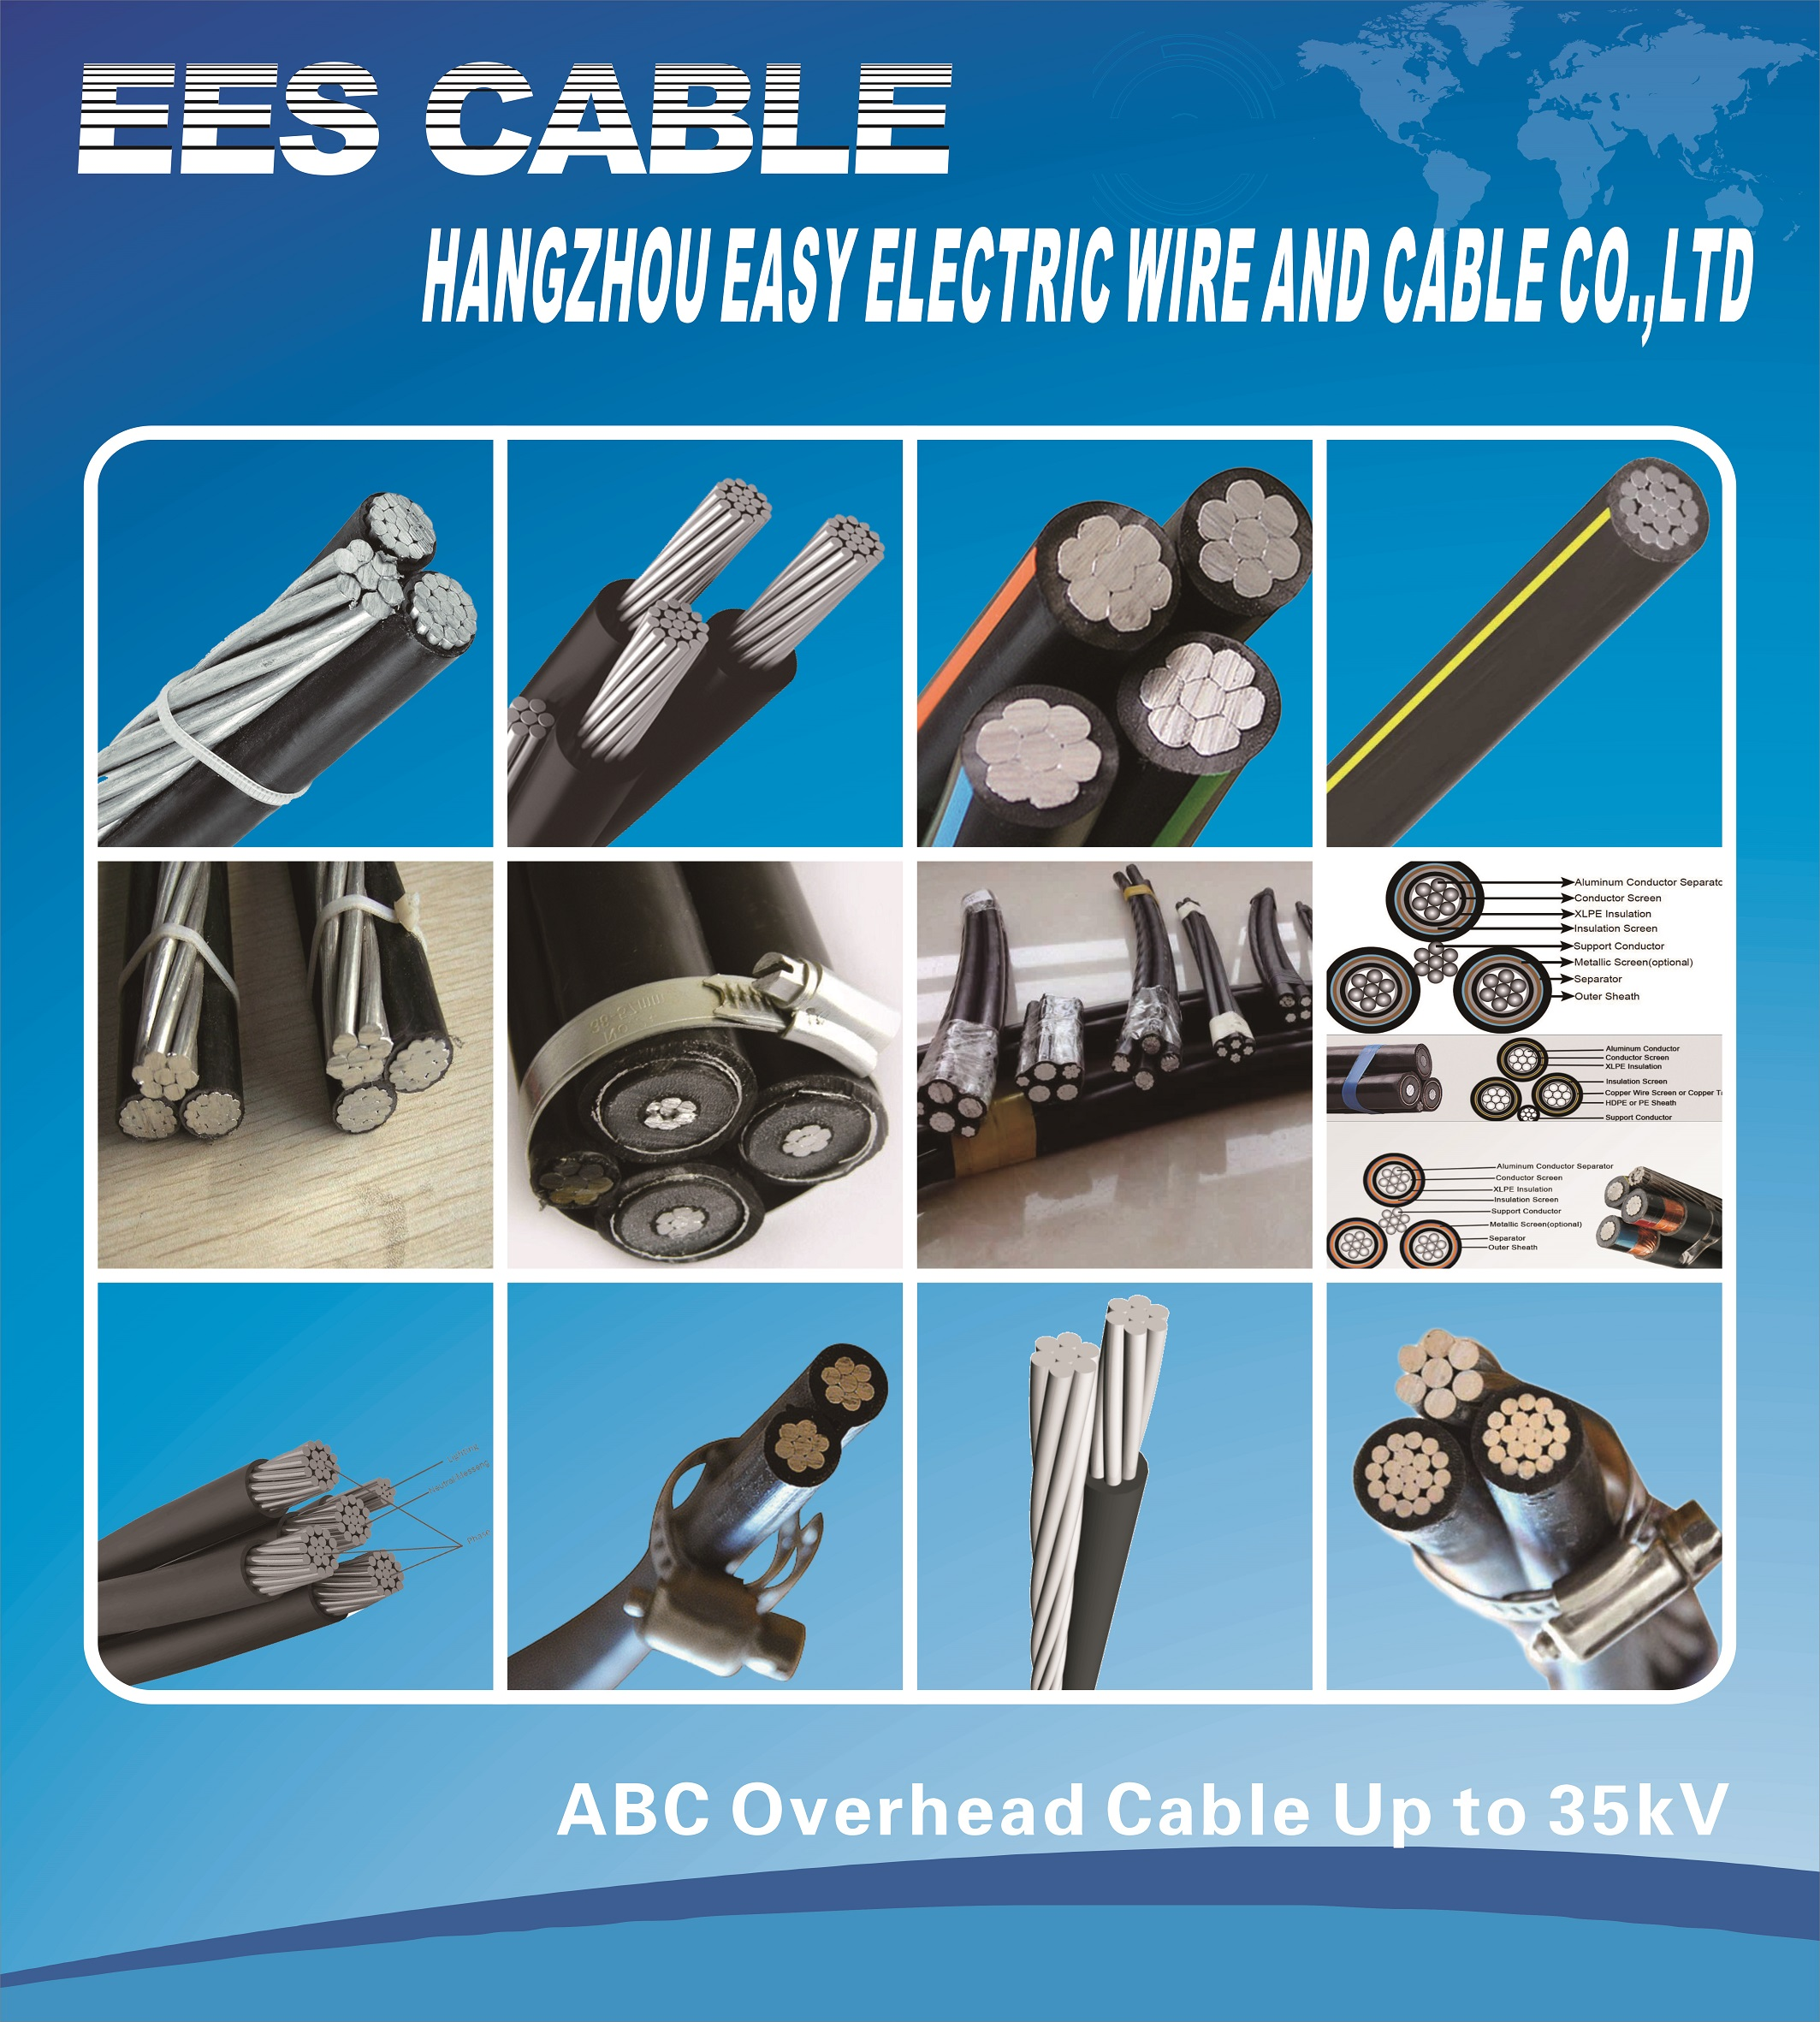 ABC overhead Cable.